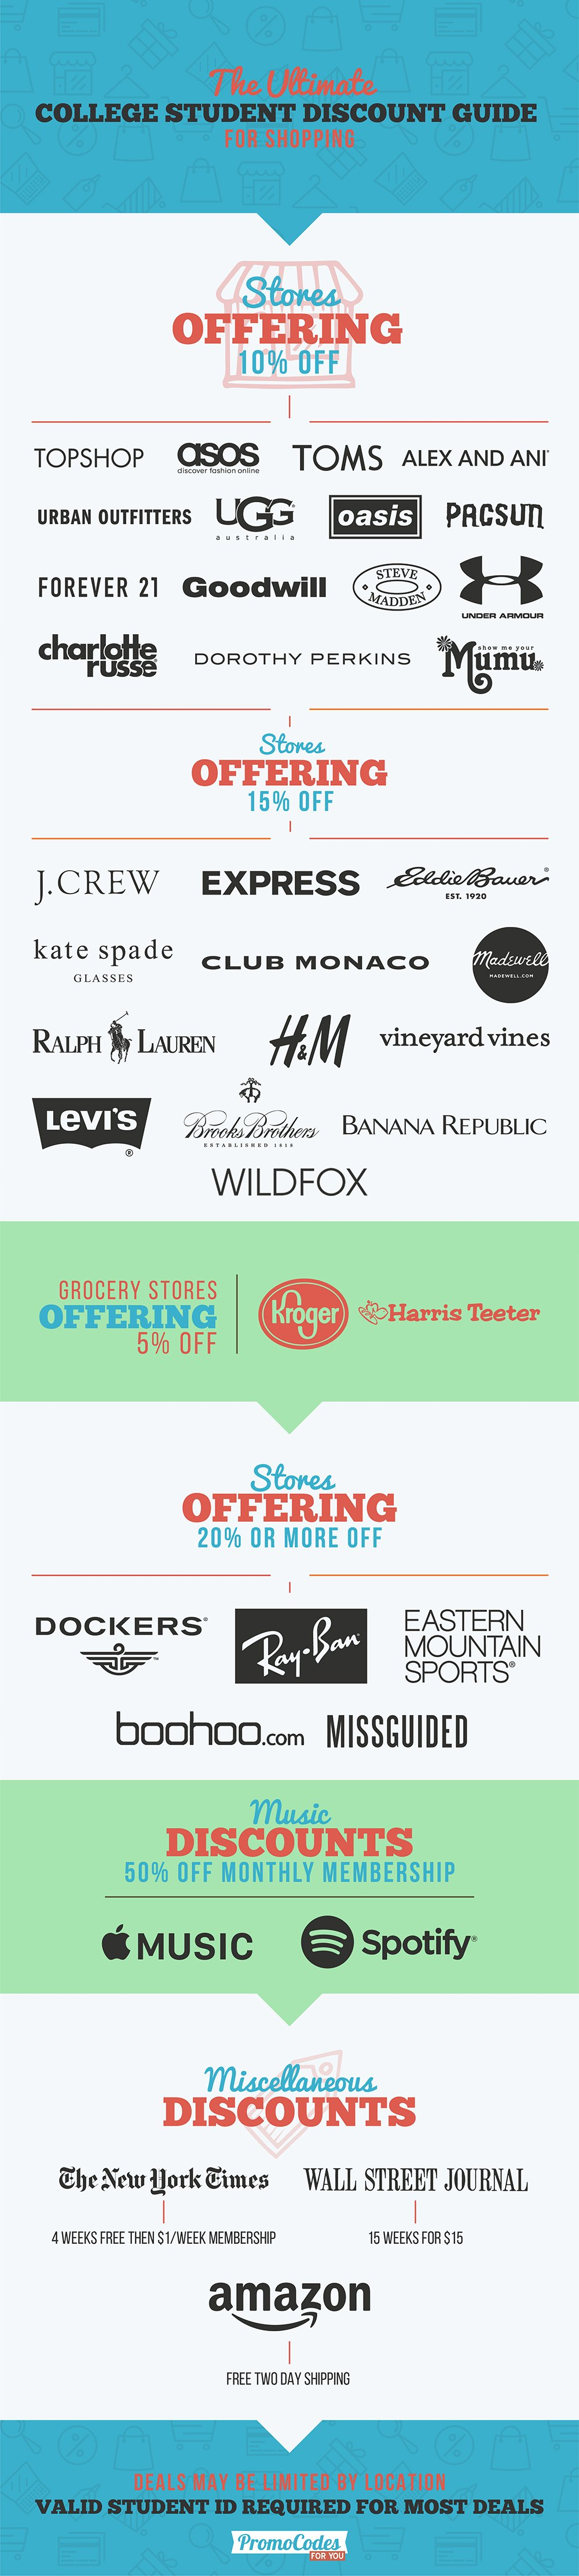 College Discount Guide for Shopping1 min